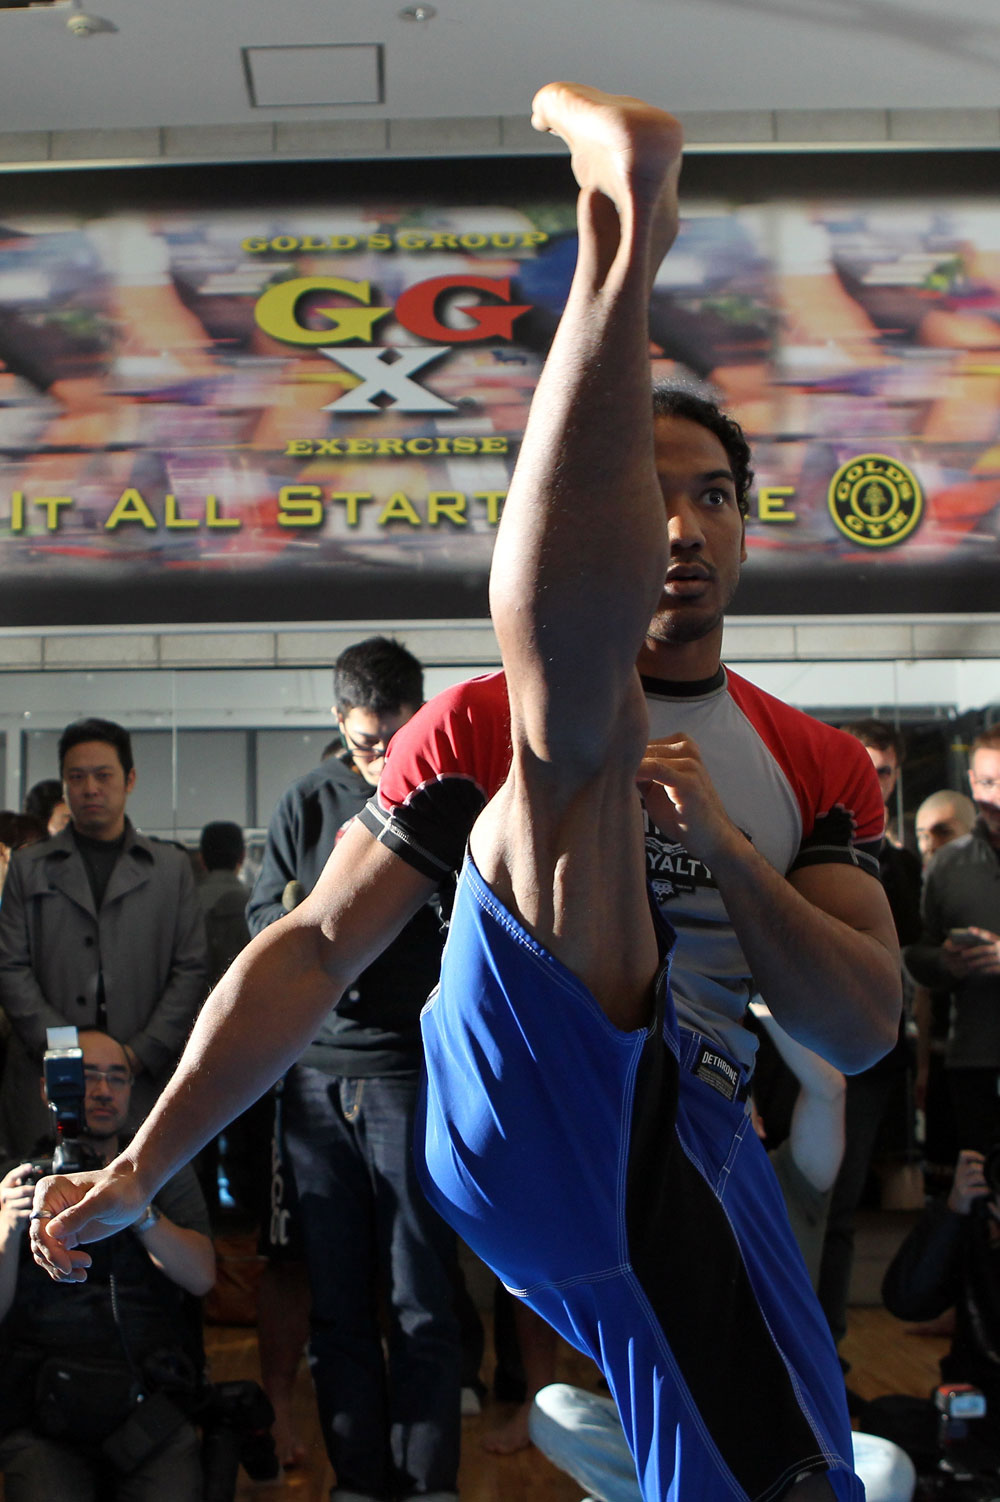 TOKYO, JAPAN - FEBRUARY 22:  Benson Henderson works out for the media during the UFC 144 open workouts at Gold's Gym on February 22, 2012 in Tokyo, Japan.  (Photo by Josh Hedges/Zuffa LLC/Zuffa LLC via Getty Images) *** Local Caption *** Benson Henderson